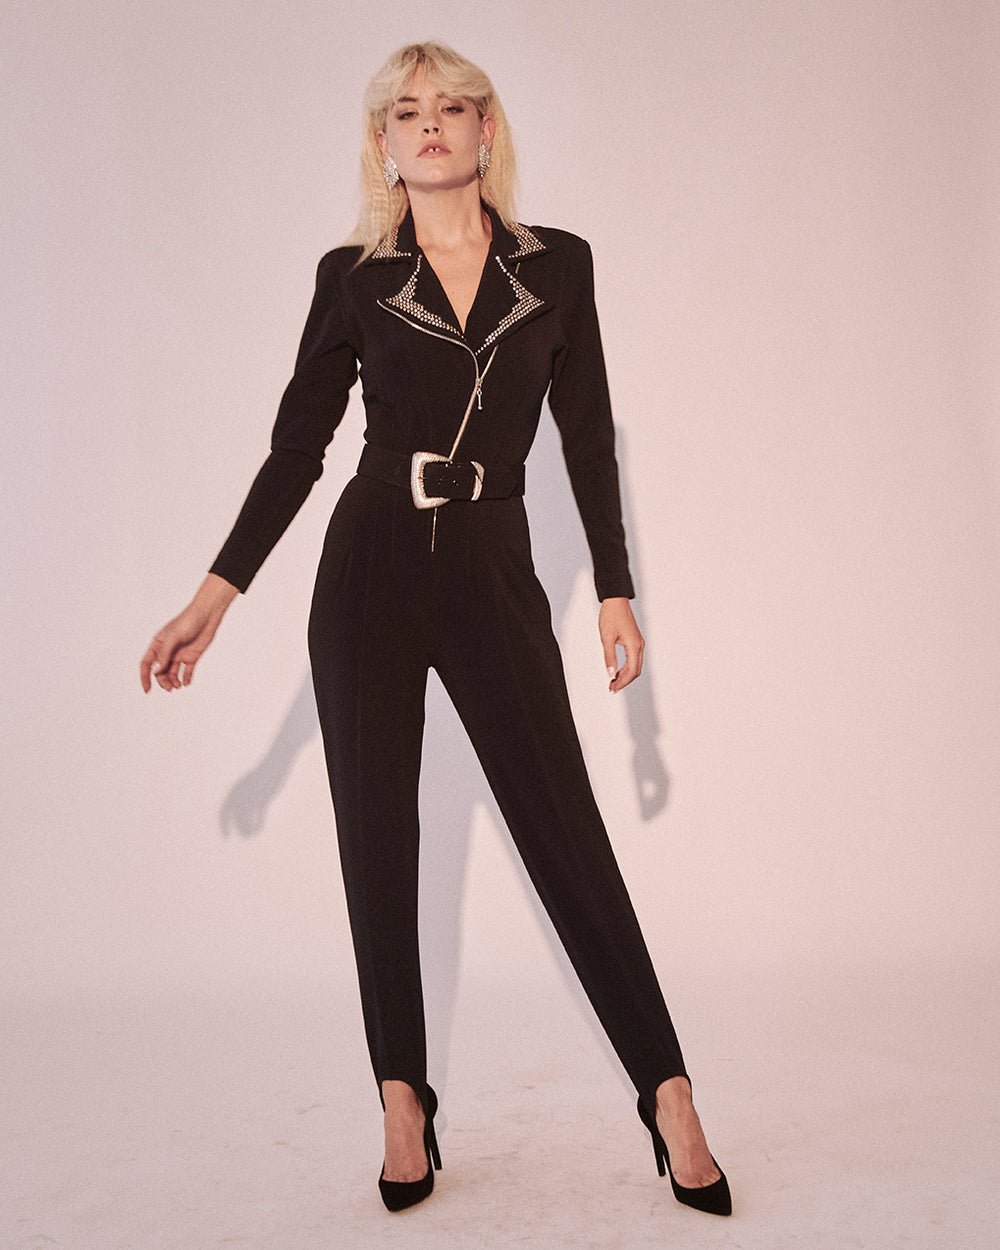 She Got The Beat Studded Catsuit